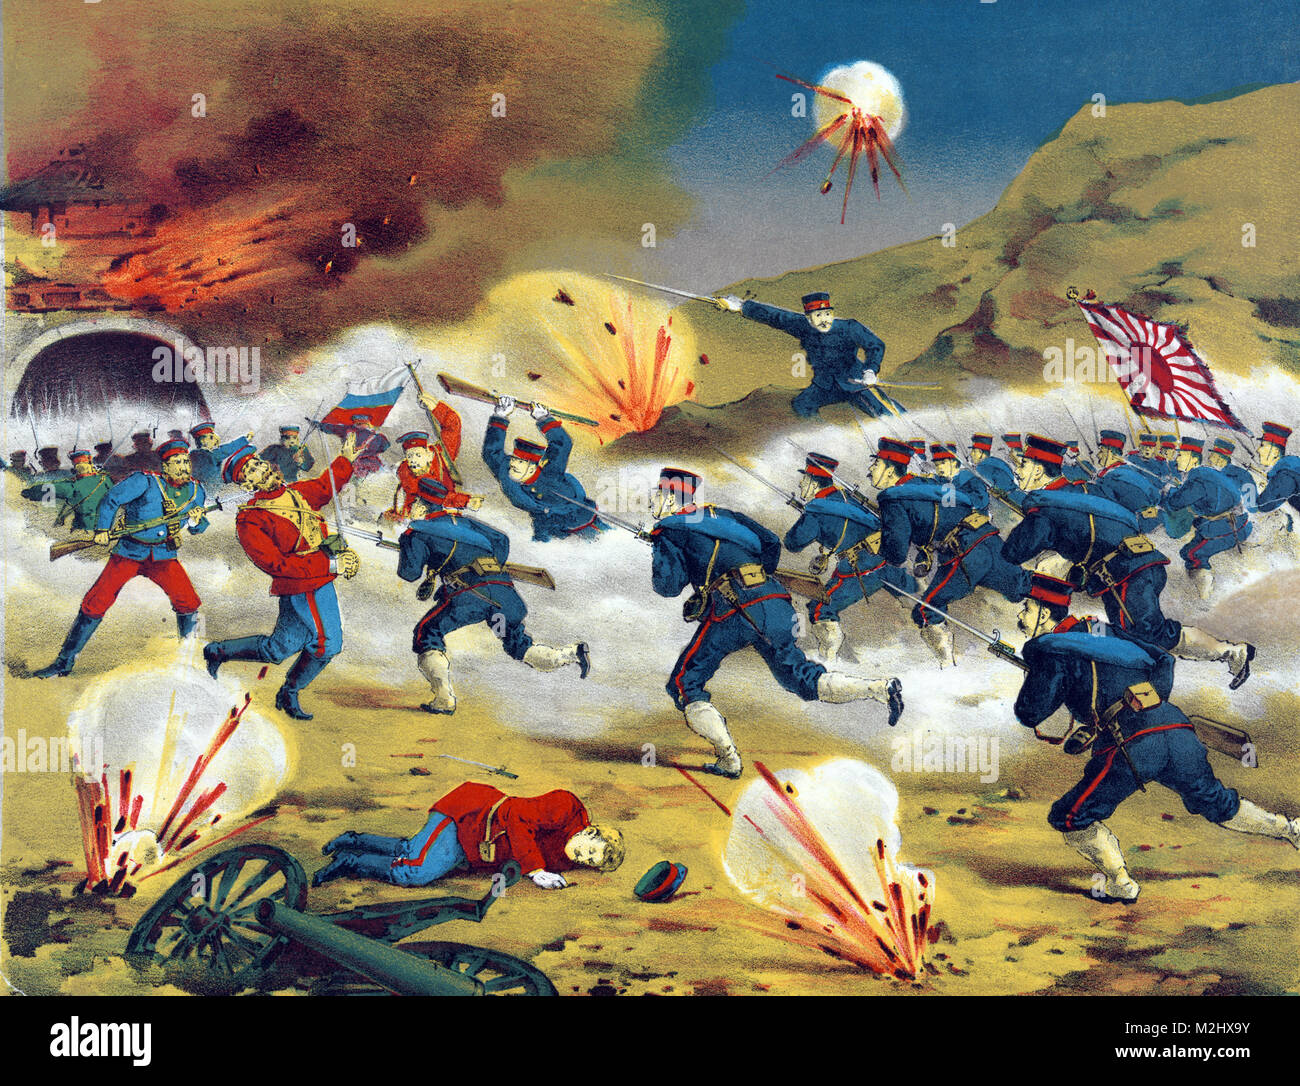 Russo-Japanese War, Battle of Yalu River, 1904 - Stock Image